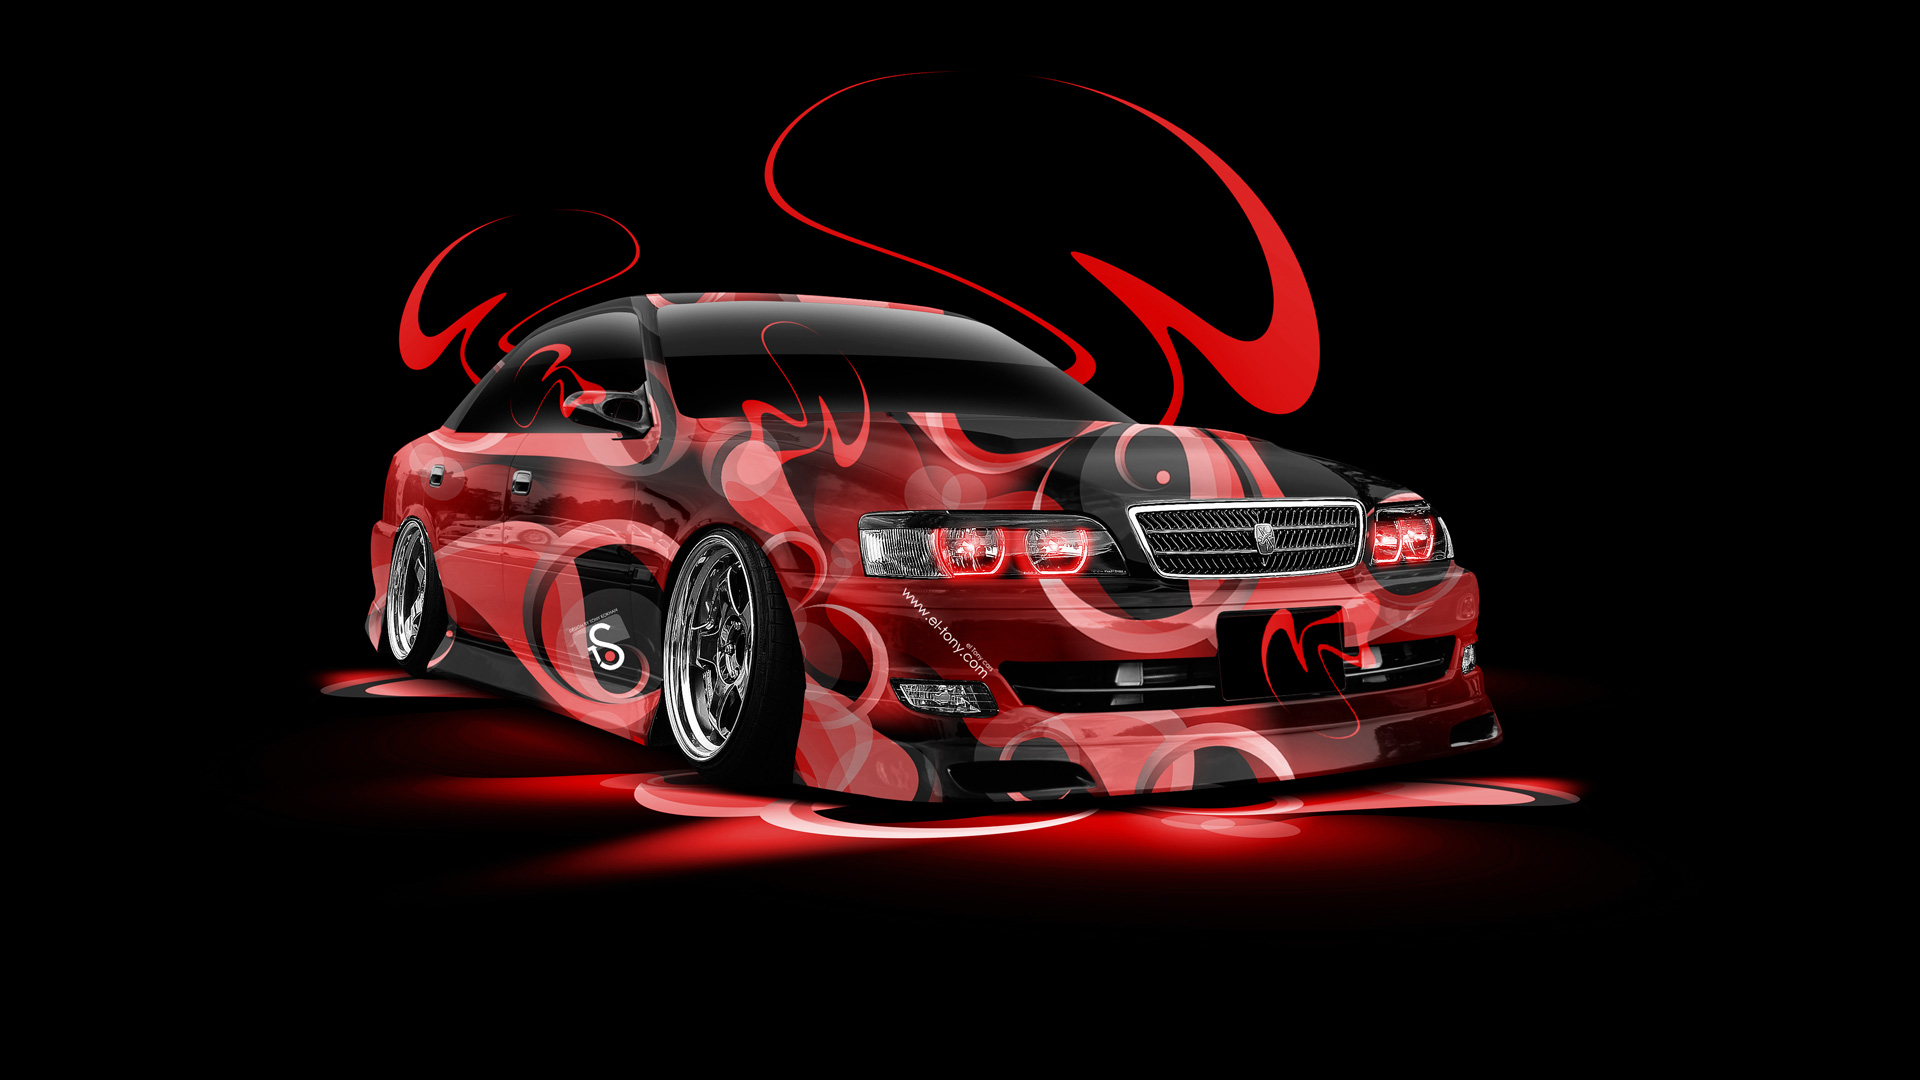 Neon Car Wallpaper: Toyota Chaser JZX100 Super Abstract Car 2014